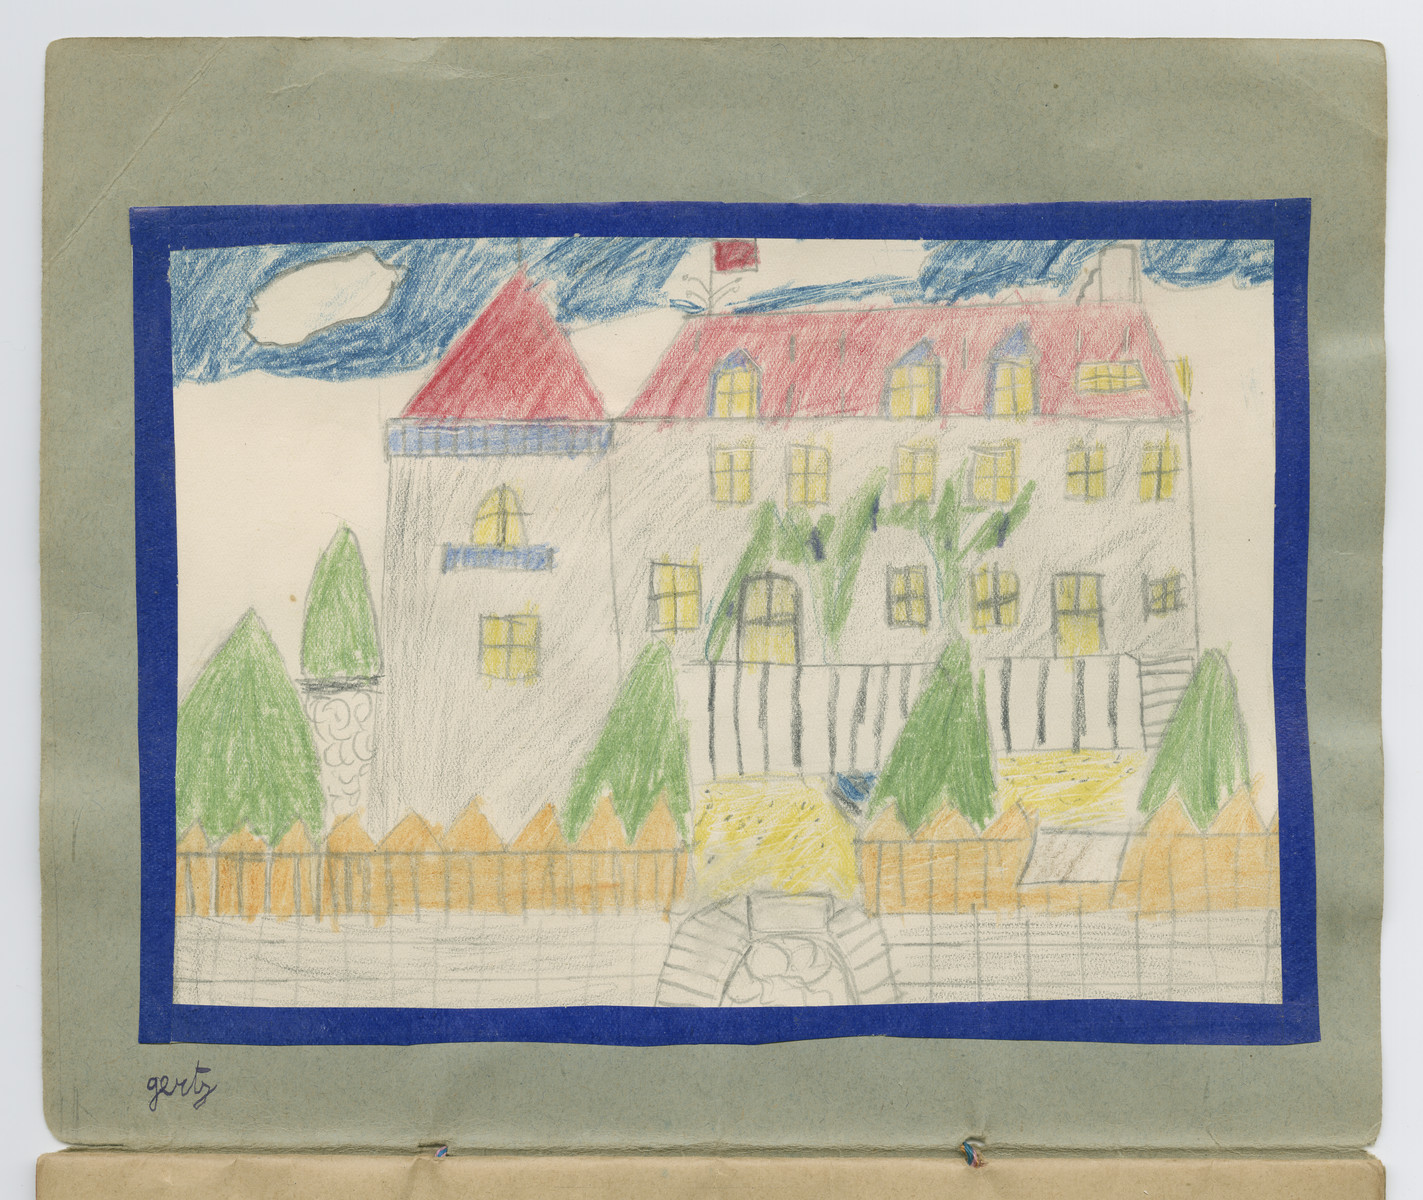 Color drawing of Chateau-le-Masgelier from a souvenir scrapbook presented to Boris Wolosoff prior to his emigration from France.